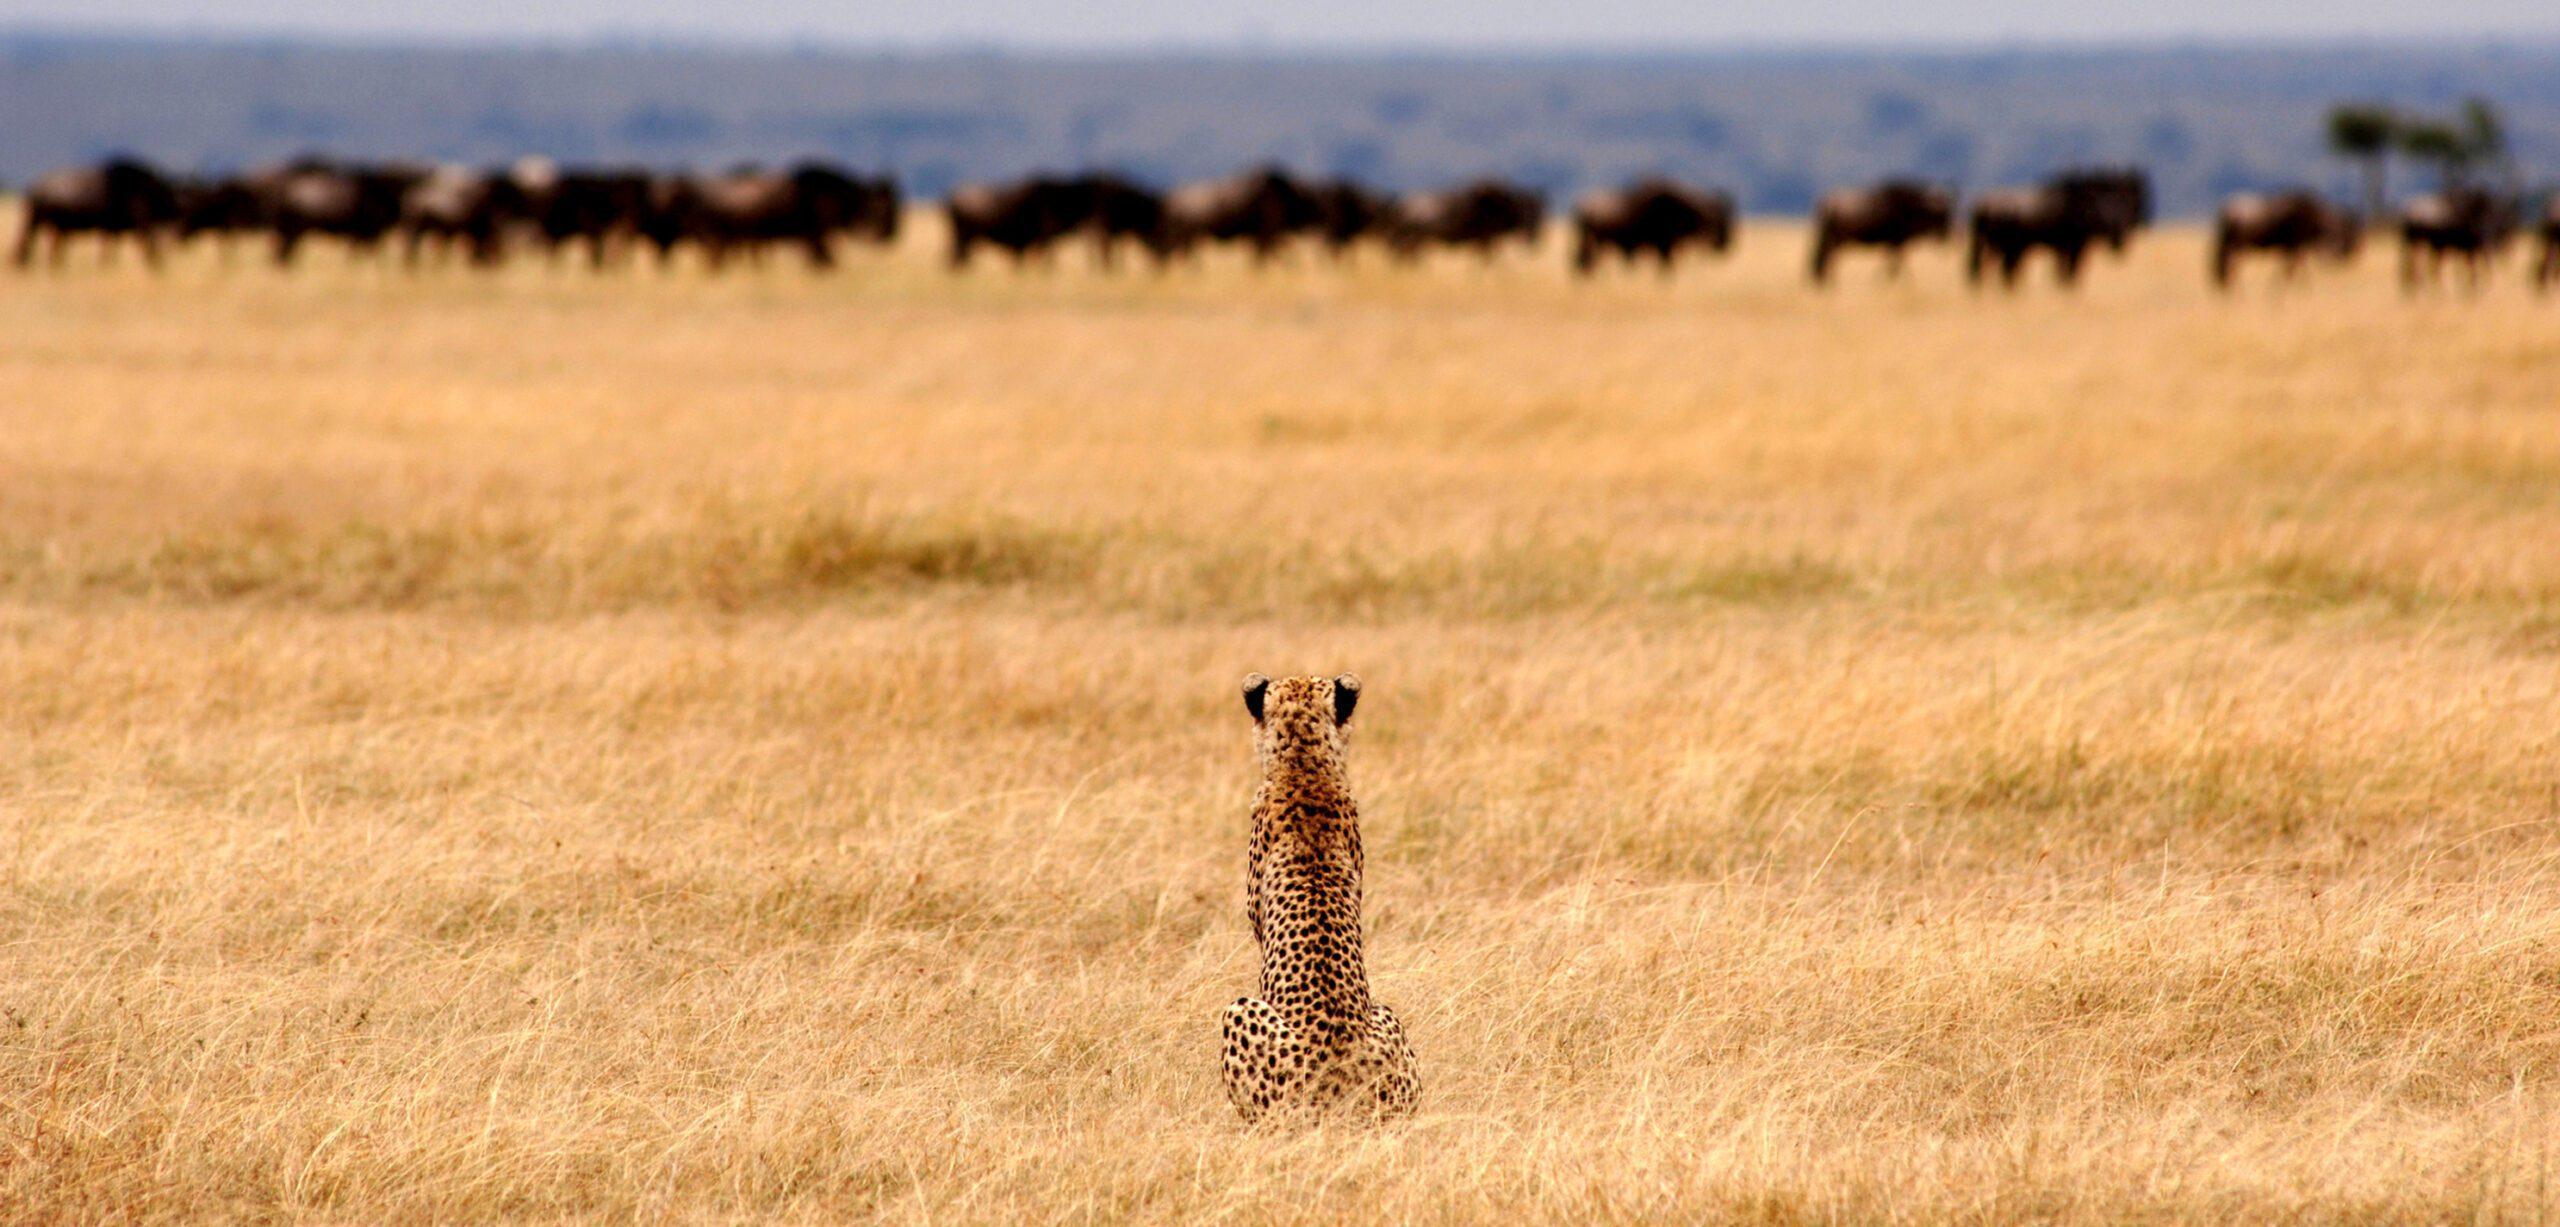 cheetah in a grassy plain looking at herd